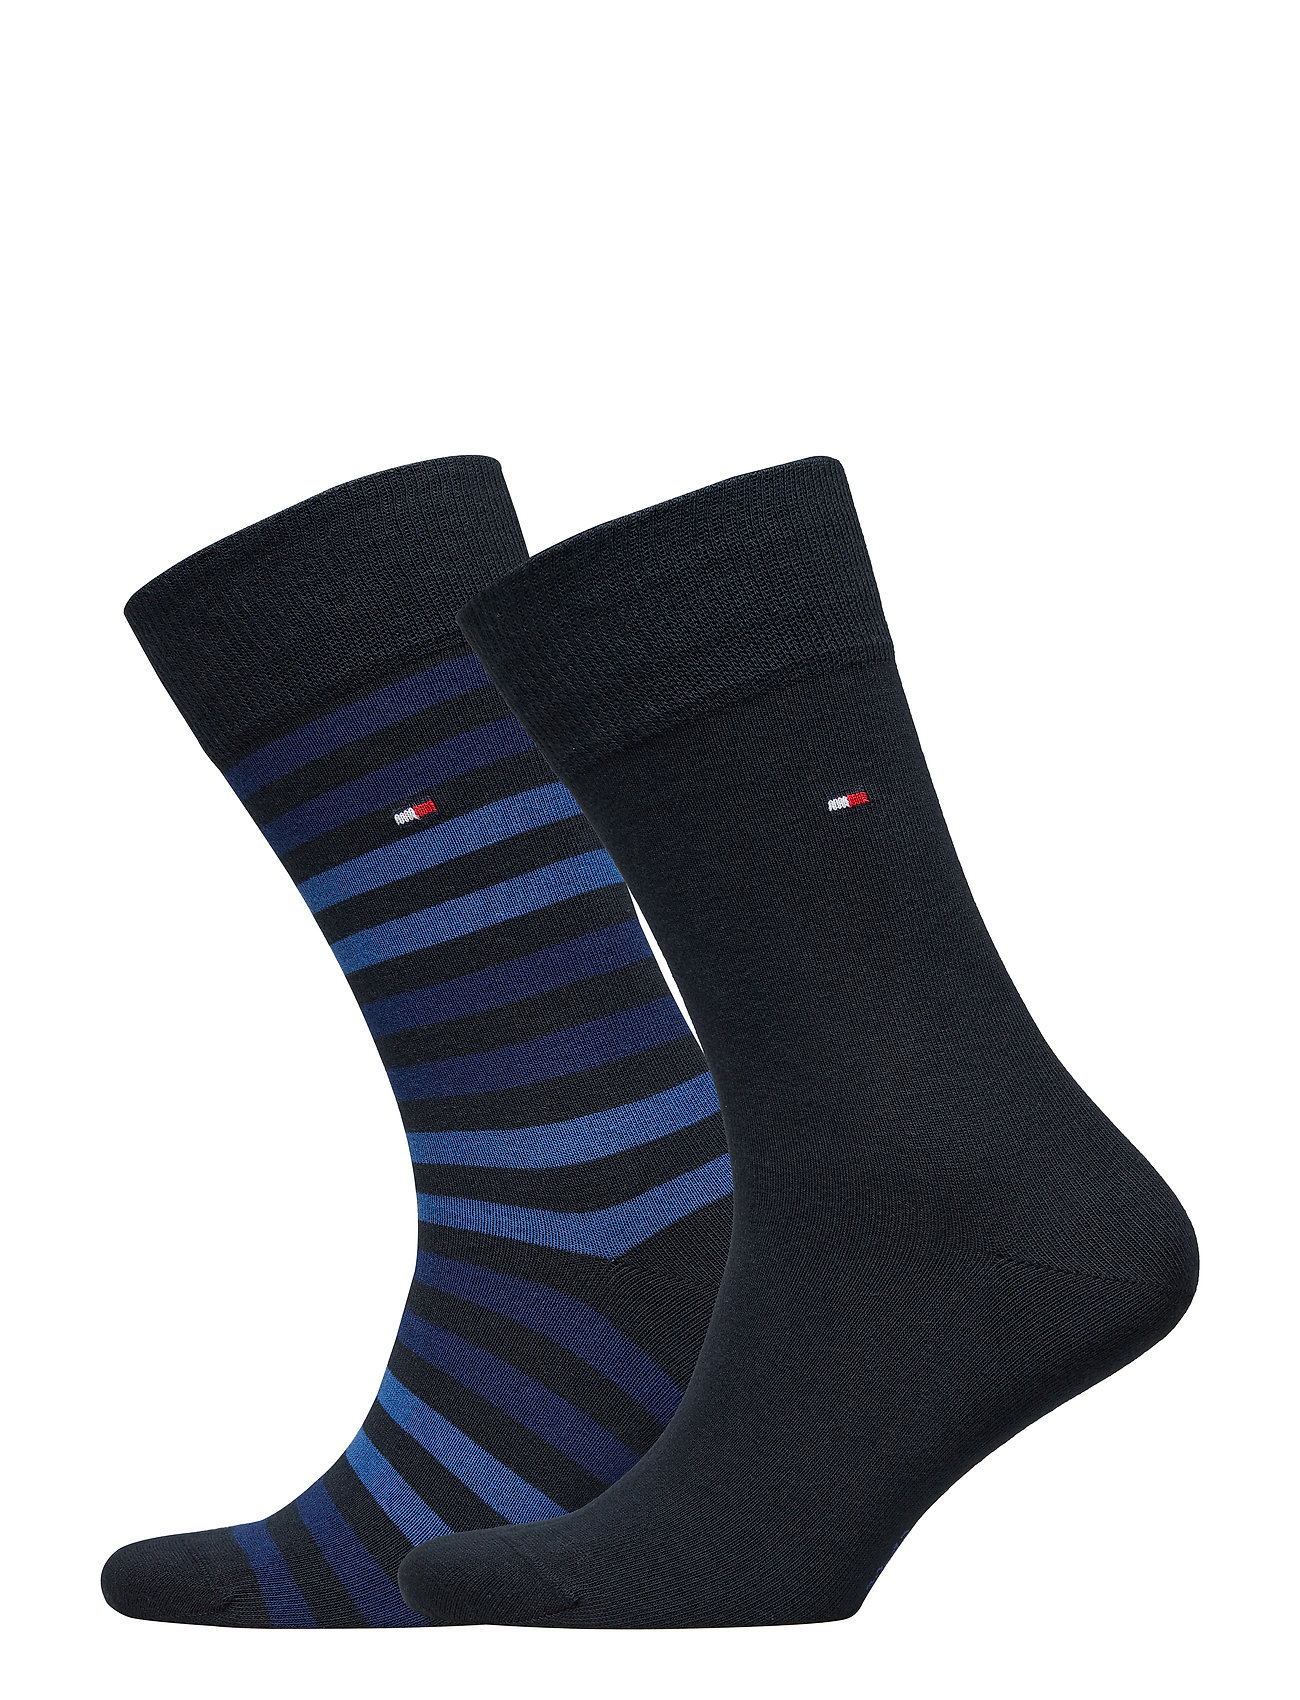 Tommy Hilfiger TH MEN DUO STRIPE SOCK 2P - DARK NAVY